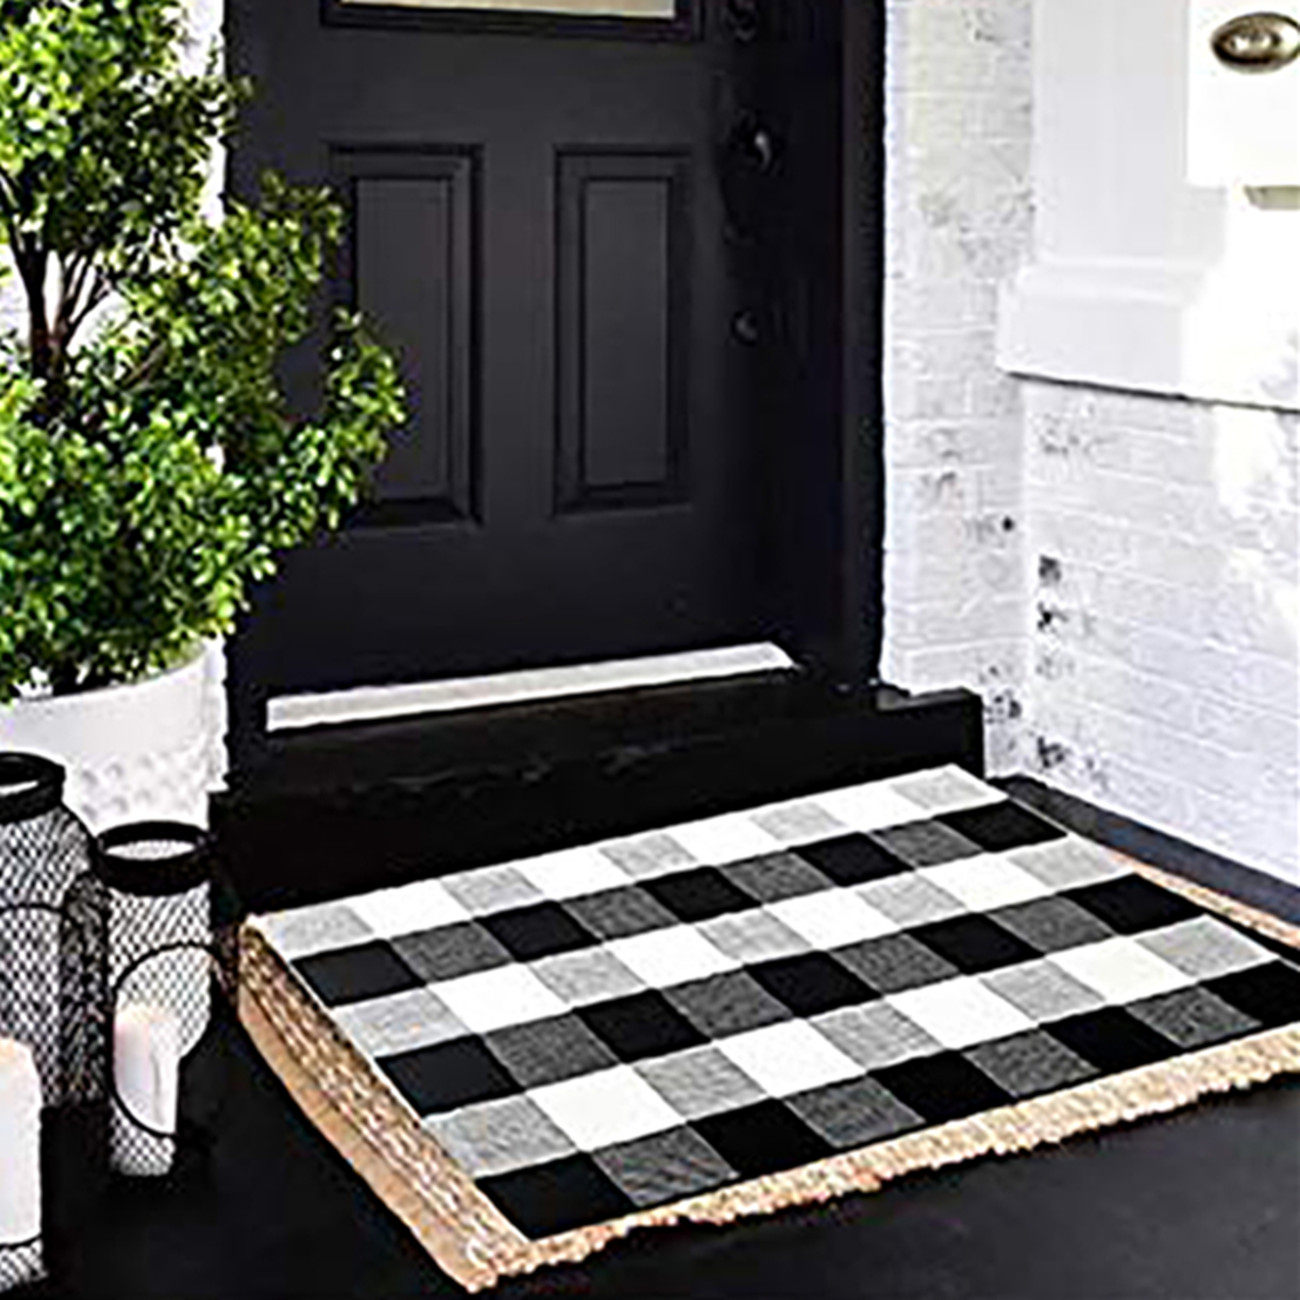 Cotton Buffalo Plaid Check Rug 27 5 X 43 Inches Washable Woven Outdoor Rugs For Layered Door Mats Porch Kitchen Farmhouse Black